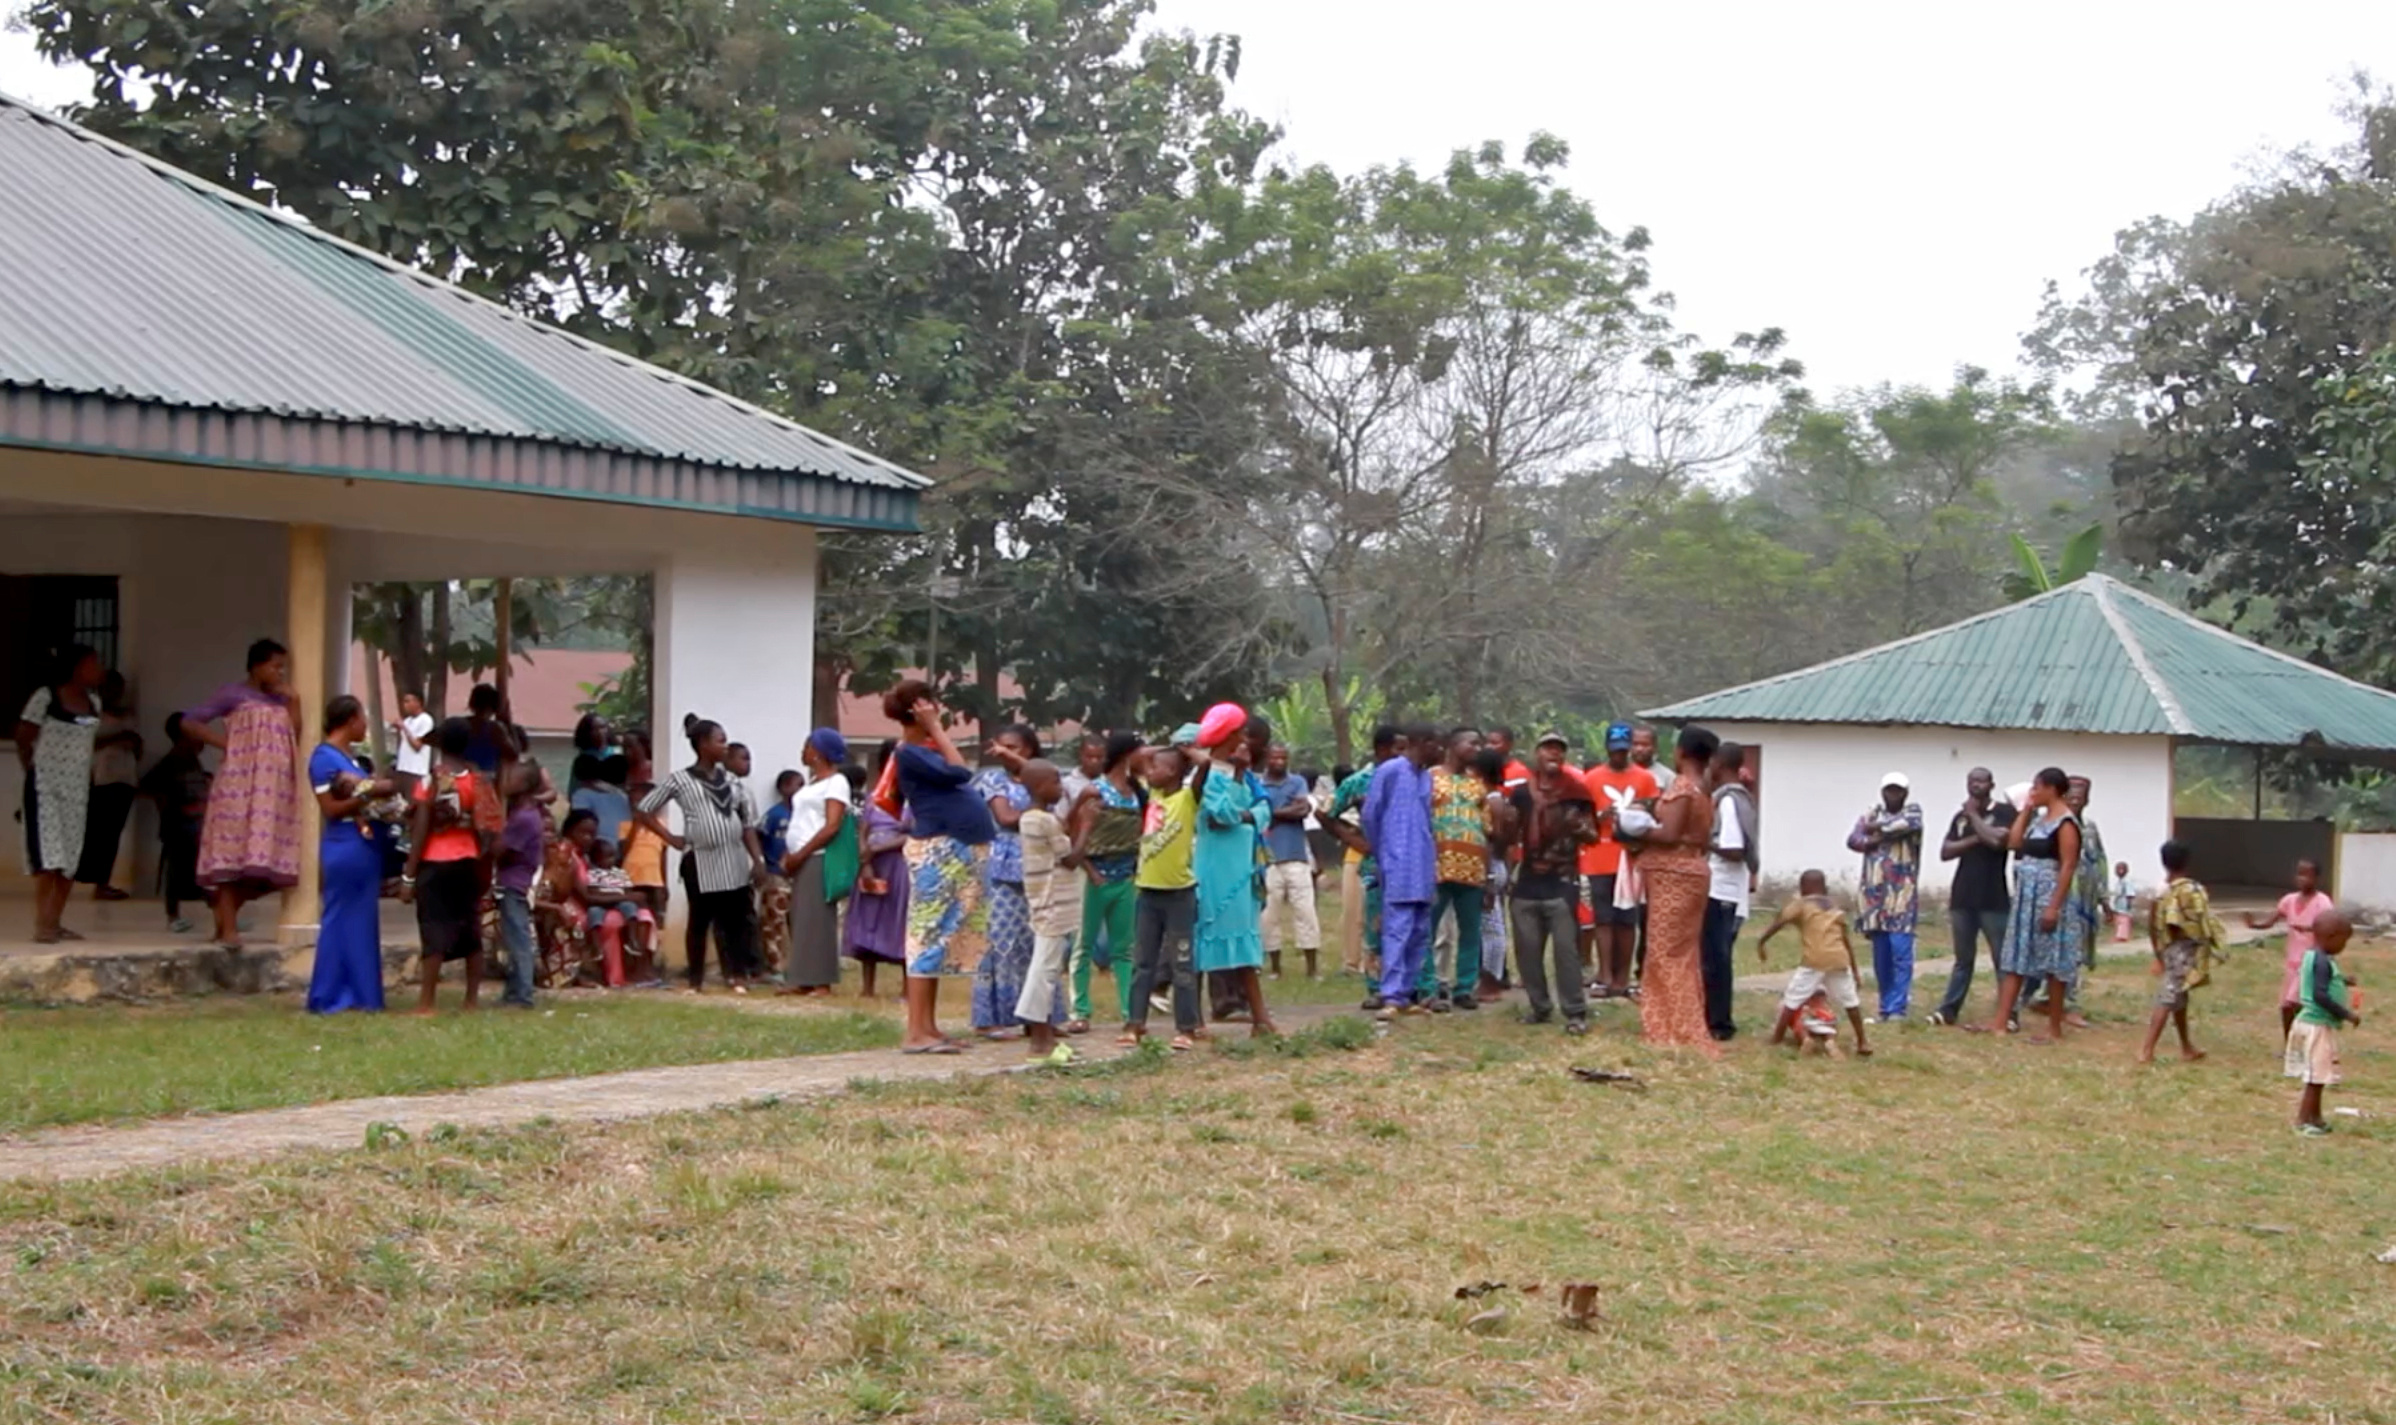 A still image taken from a video shot Dec. 9, 2017, shows Cameroonian refugees standing outside a center in Agbokim Waterfalls village, which is near the Cameroon-Nigeria border.